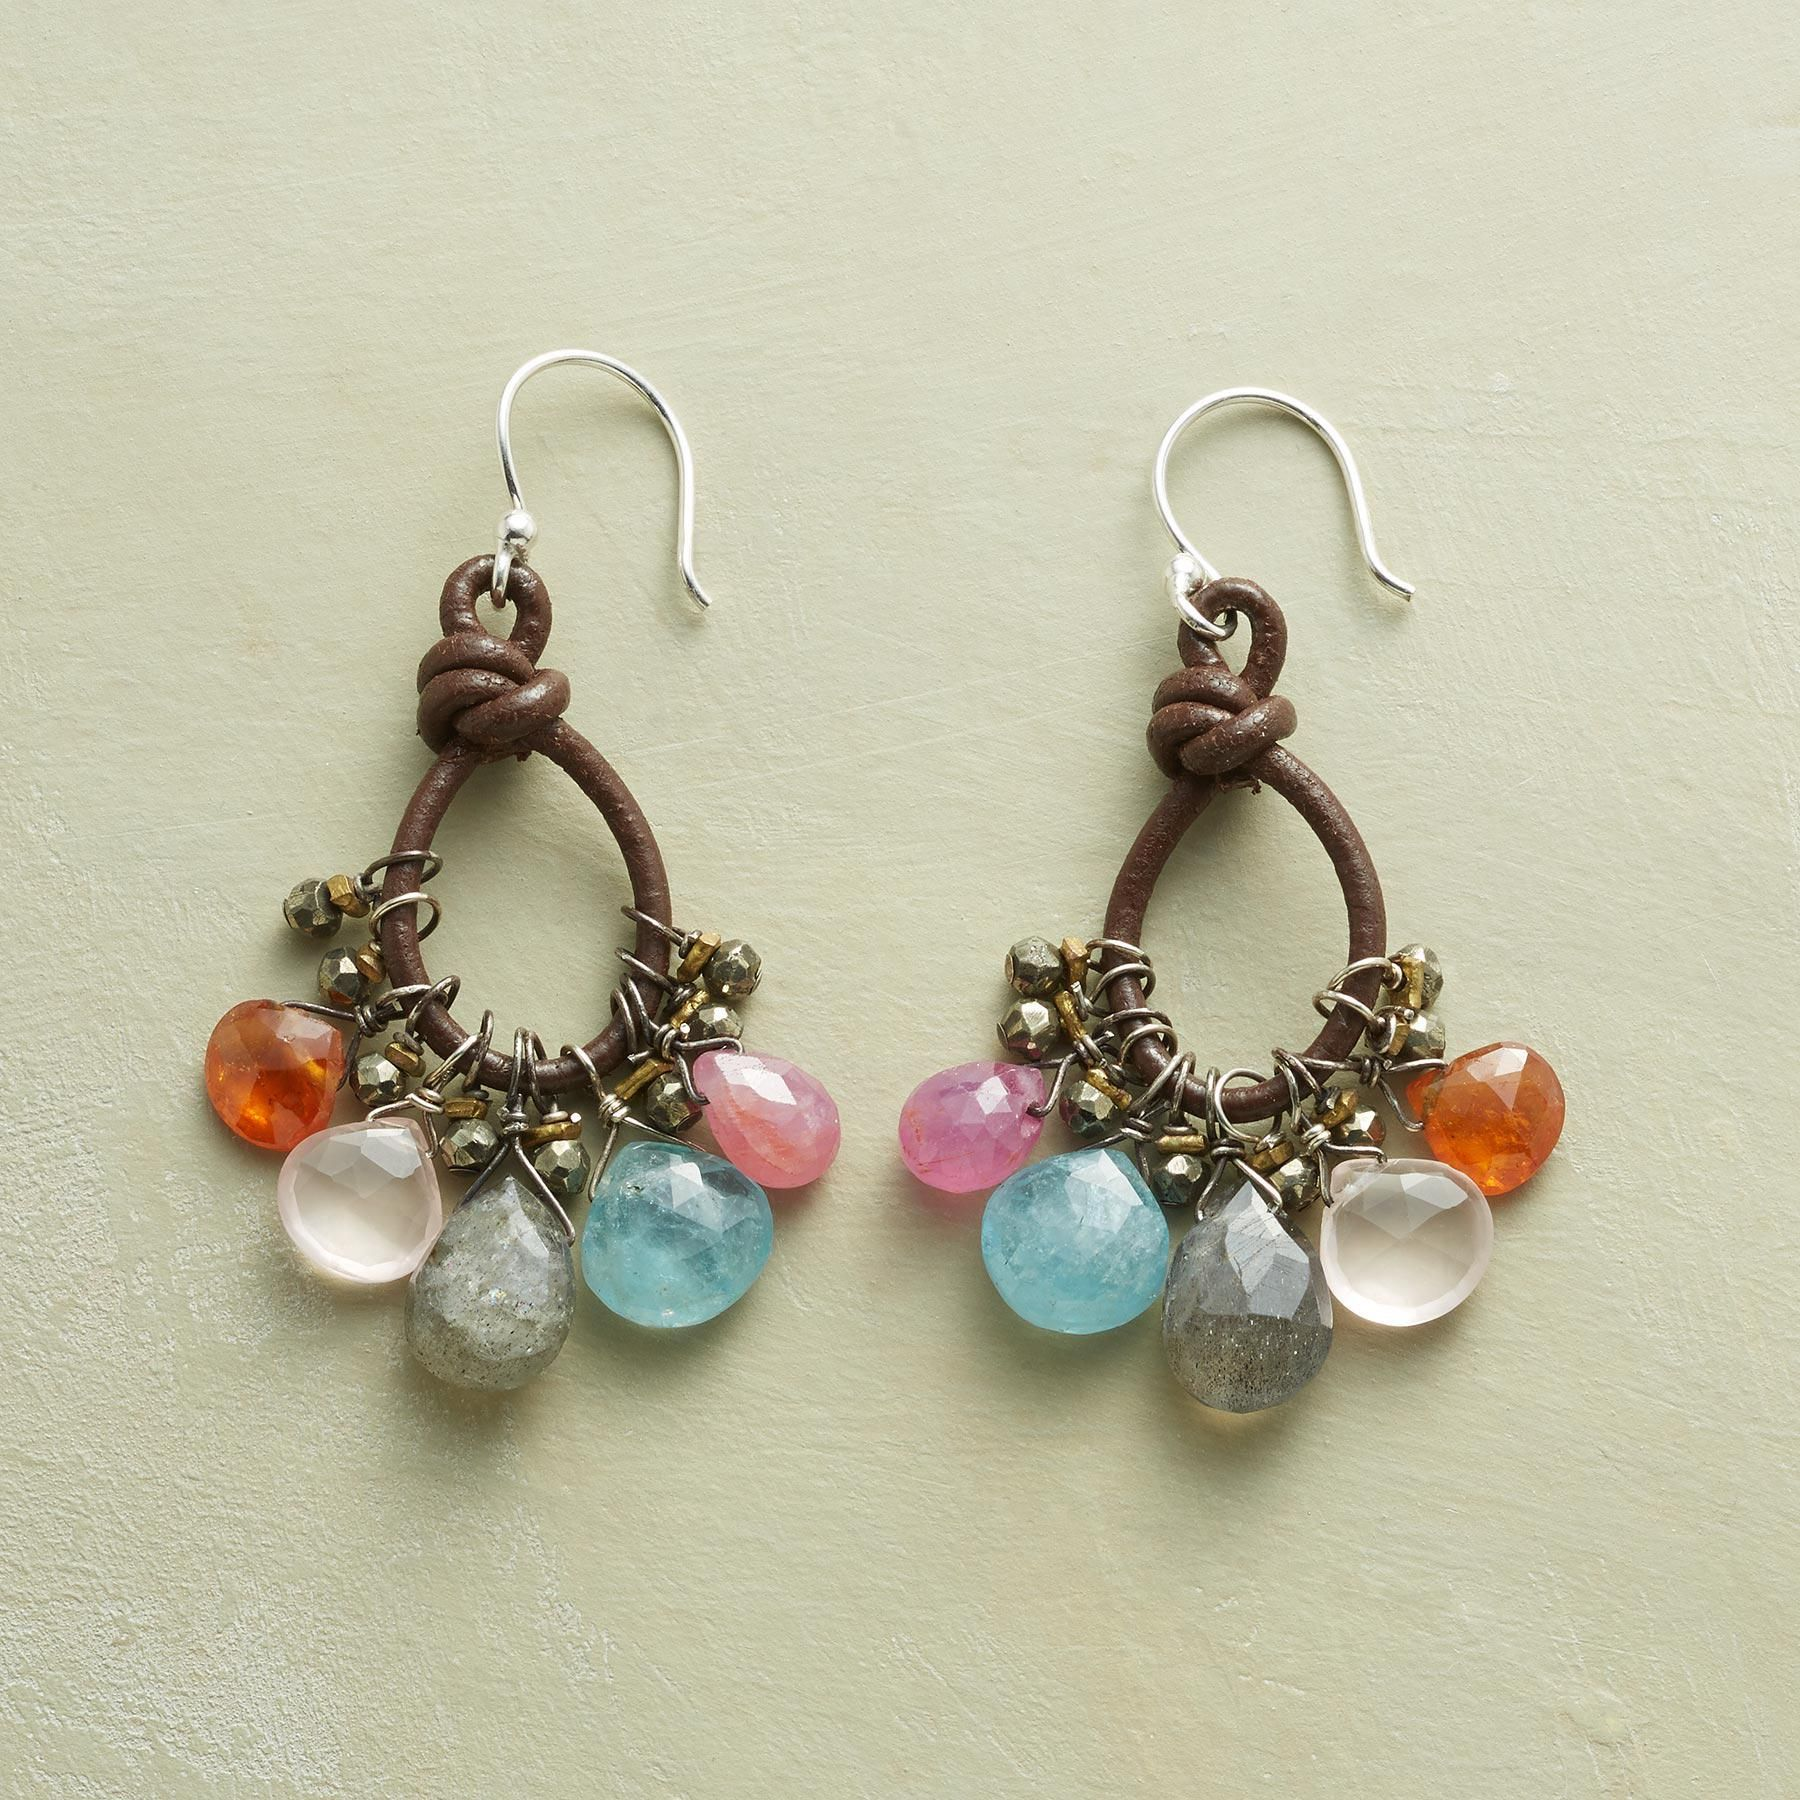 "PAINTBOX EARRINGS -- So many sweet, sparkling stones—aquamarine, rose quartz, pink sapphire—made all the more lovely contrasted with looped leather in chocolate brown. Exclusive. 1-5/8""L."